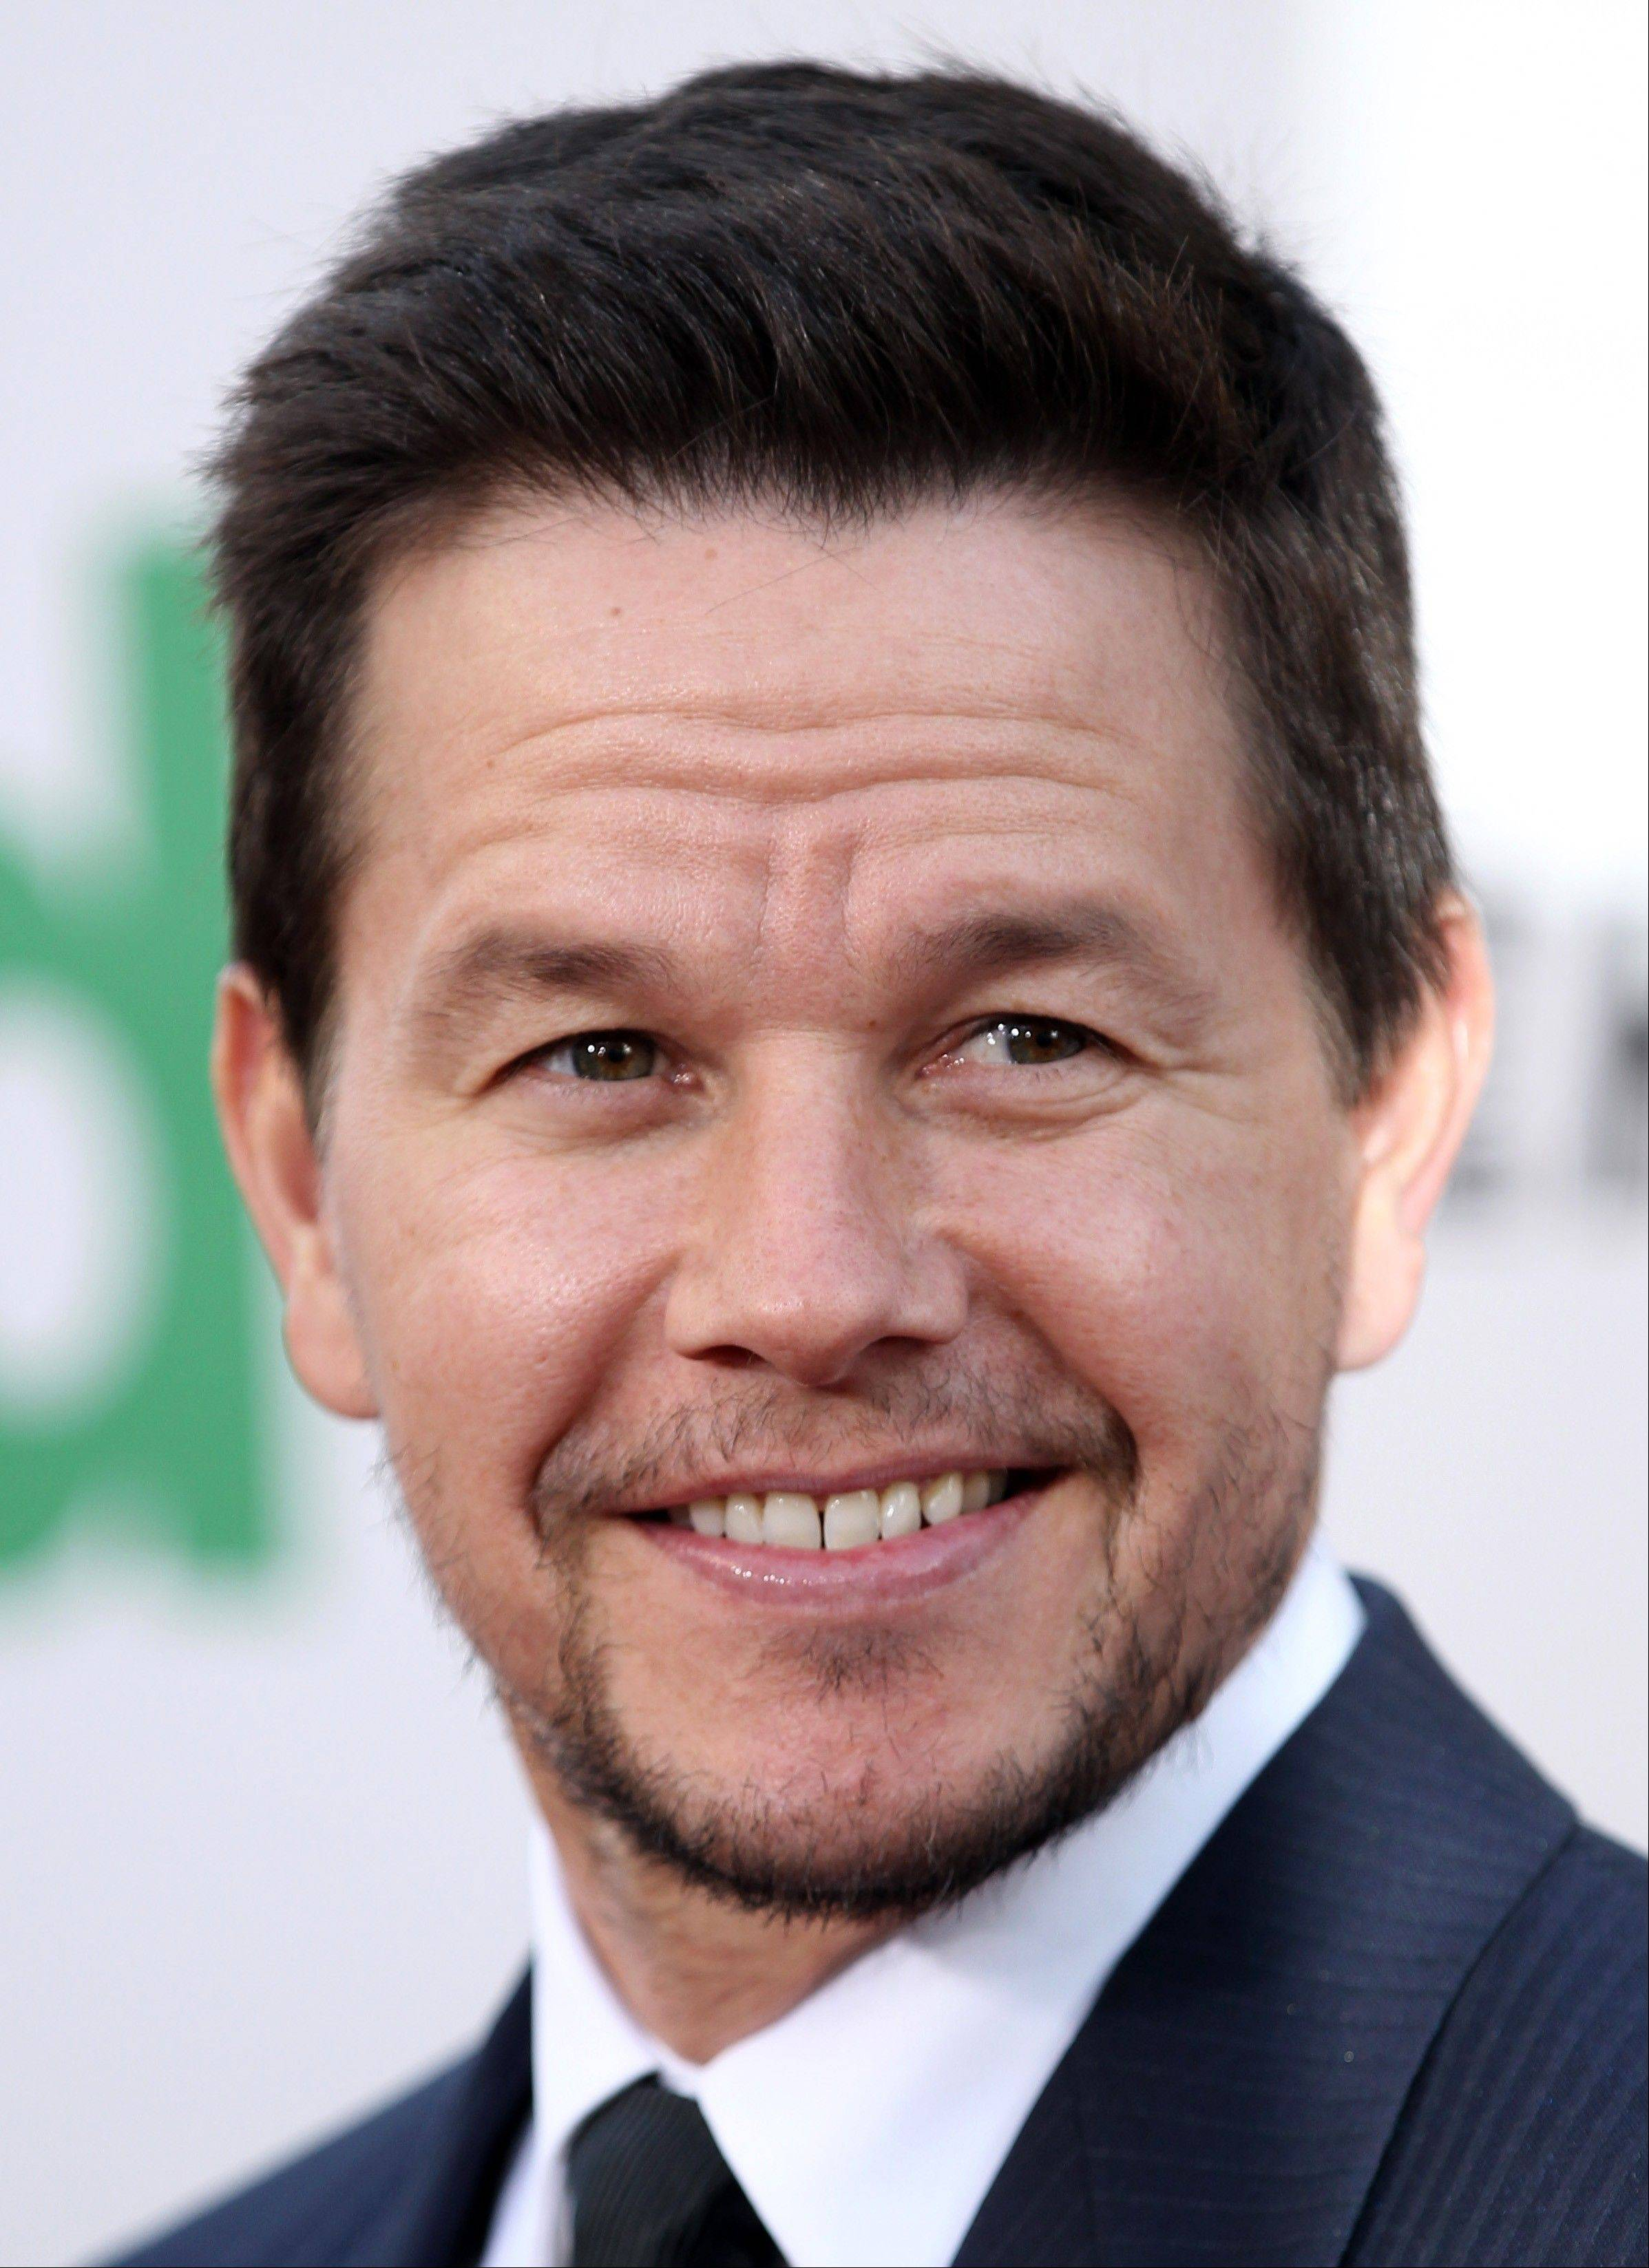 �Transformers� director Michael Bay says 41-year-old actor Mark Wahlberg will star in the upcoming fourth �Transformers� film.